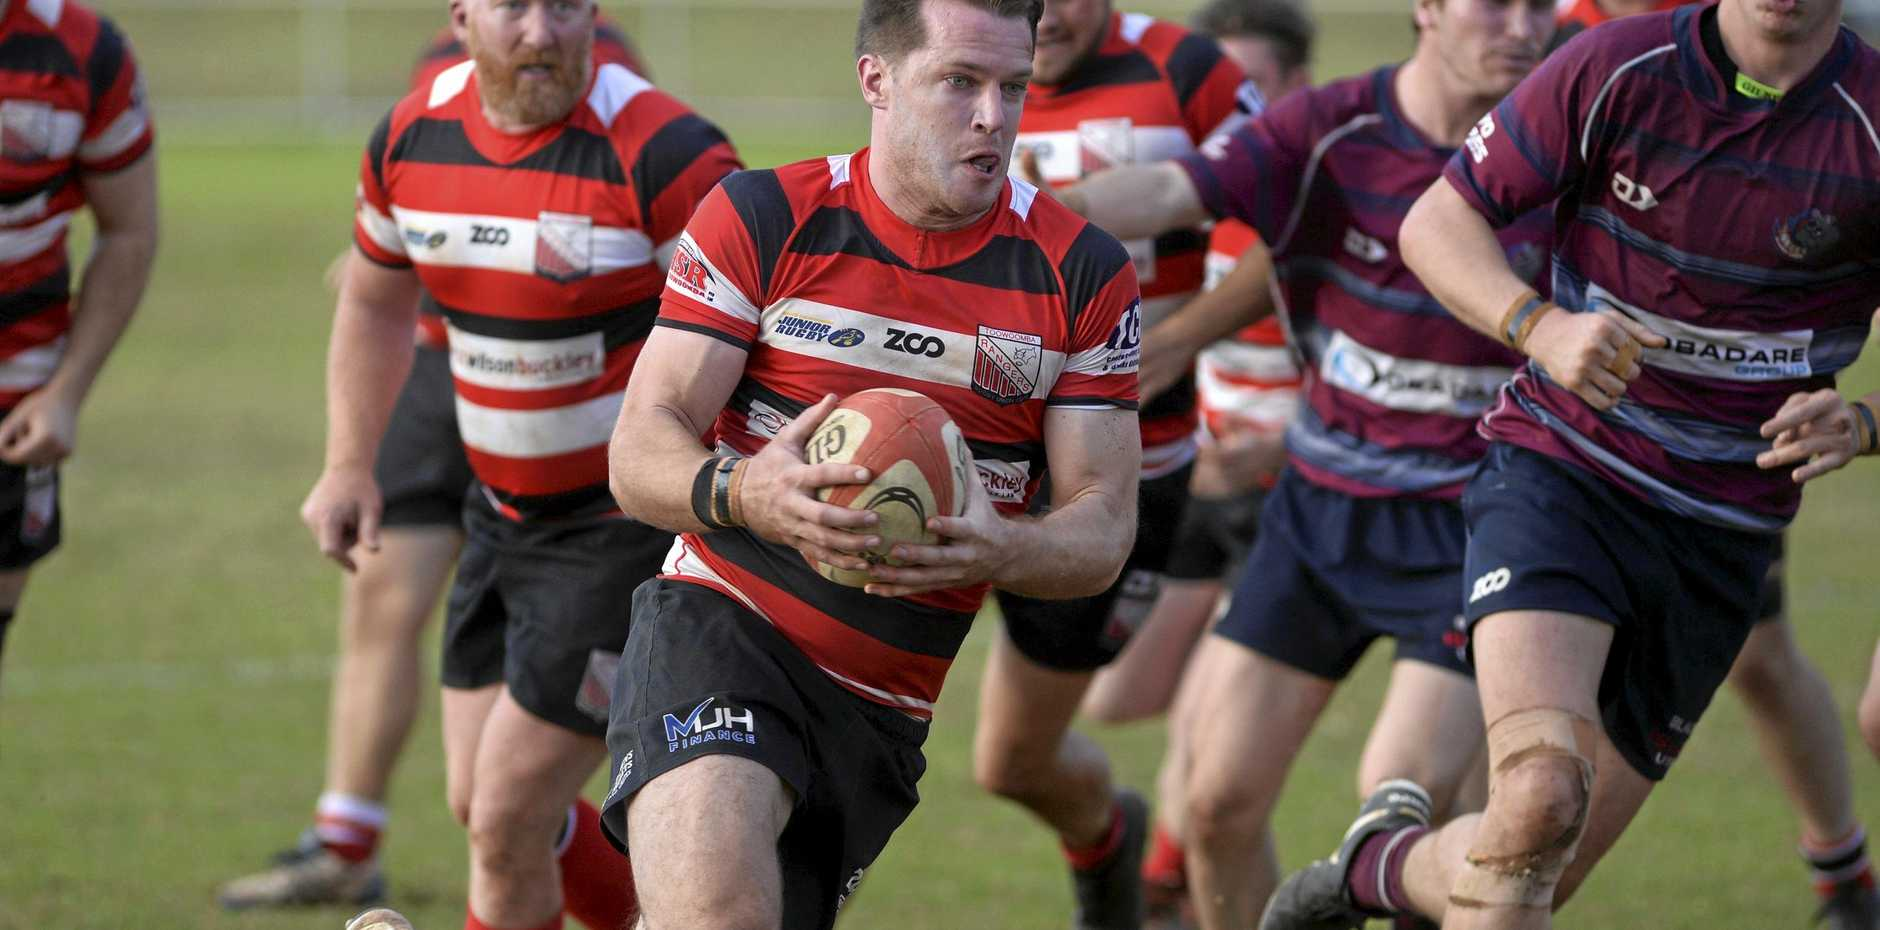 ON THE MOVE: Toowoomba Rangers player Fraser Hess has been in solid try-scoring form in the Risdon Cup.